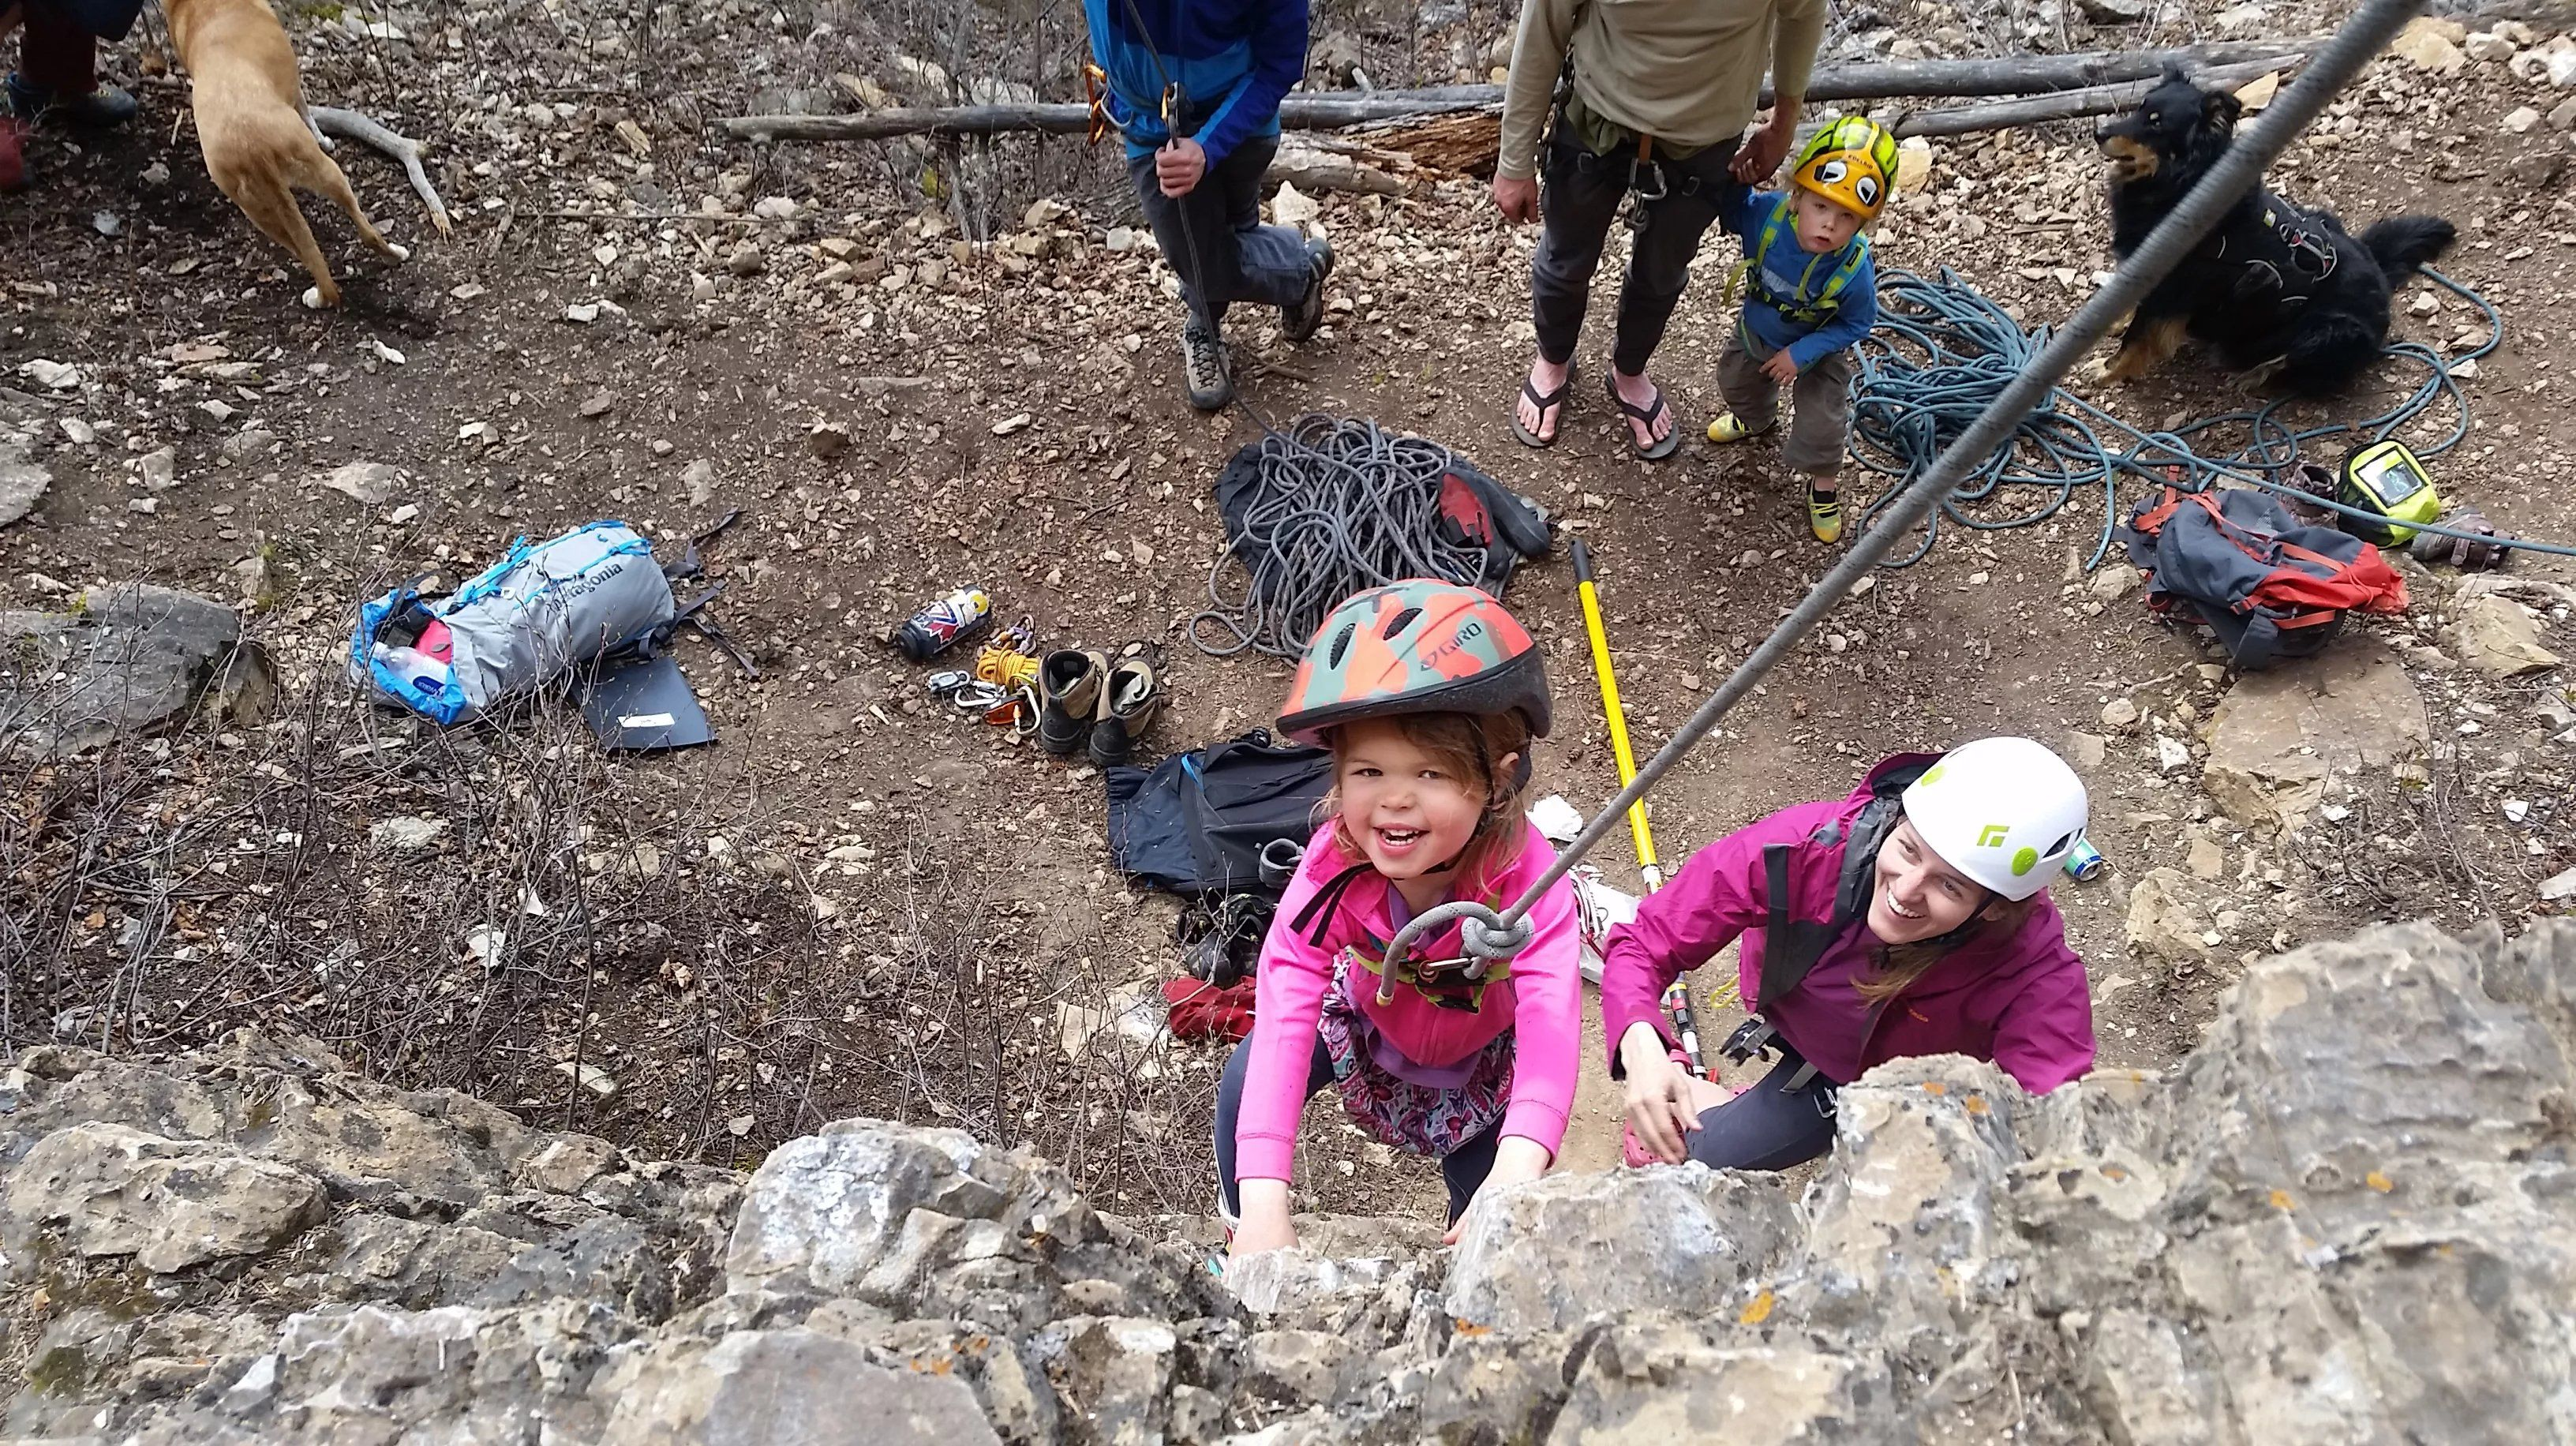 Rock climbing as a family - including toddlers in sport climbing is ...